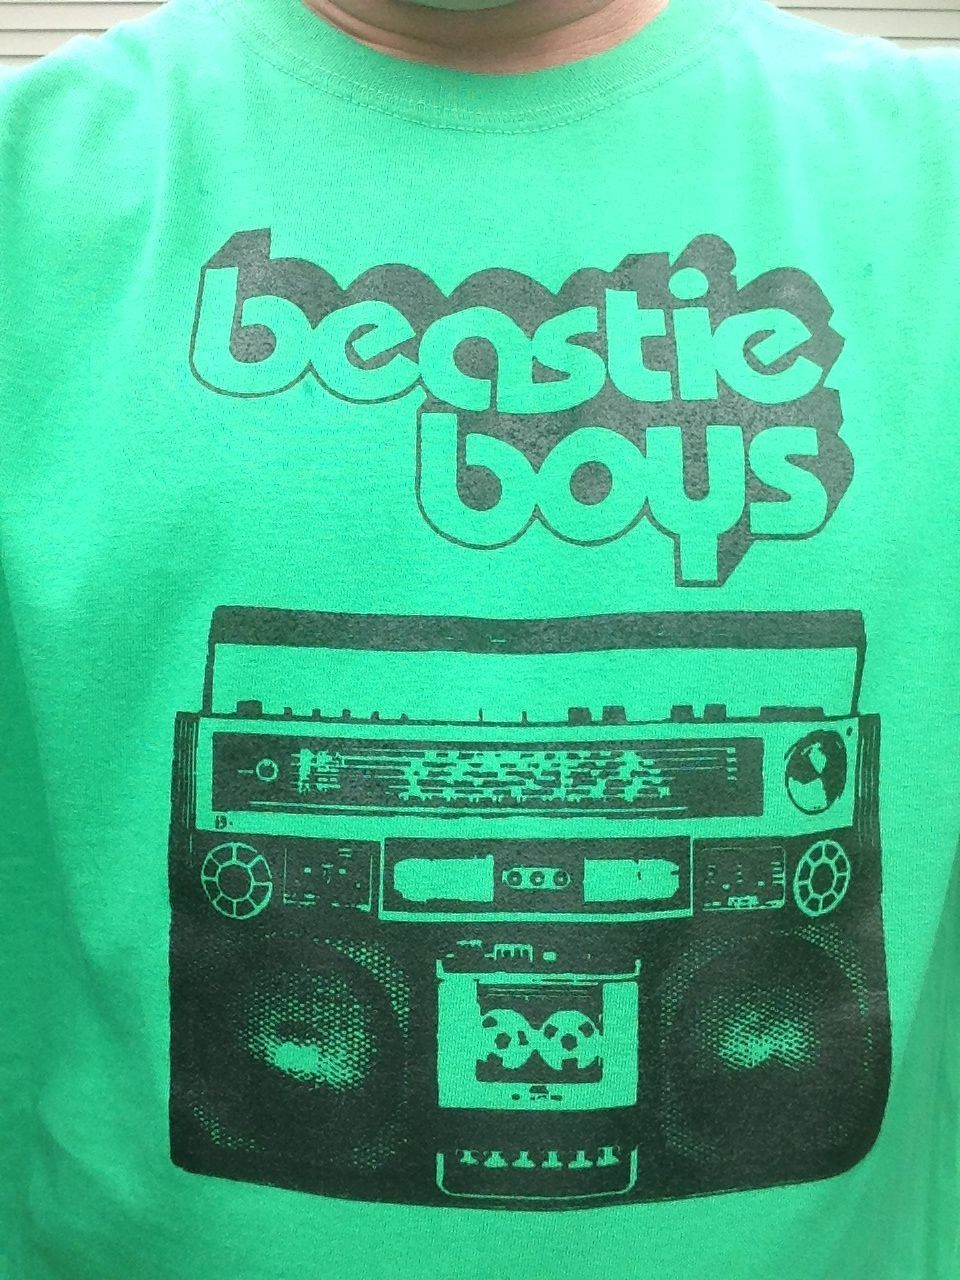 Beastie Boys Body Moving Shirt Choose Your Size S/M/L/Xl